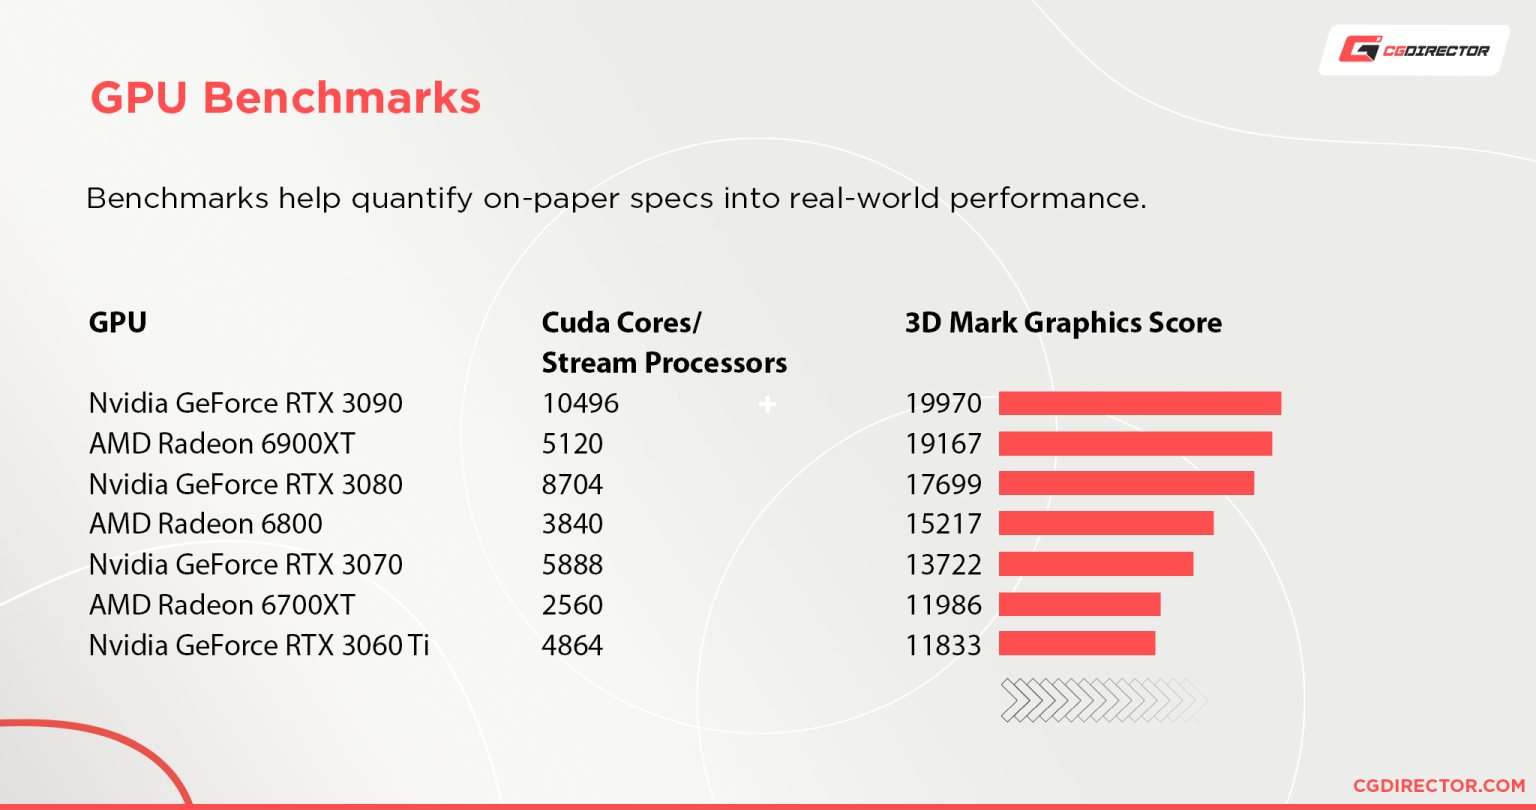 GPU Benchmarks - AMD and Nvidia GPUs listed by performance